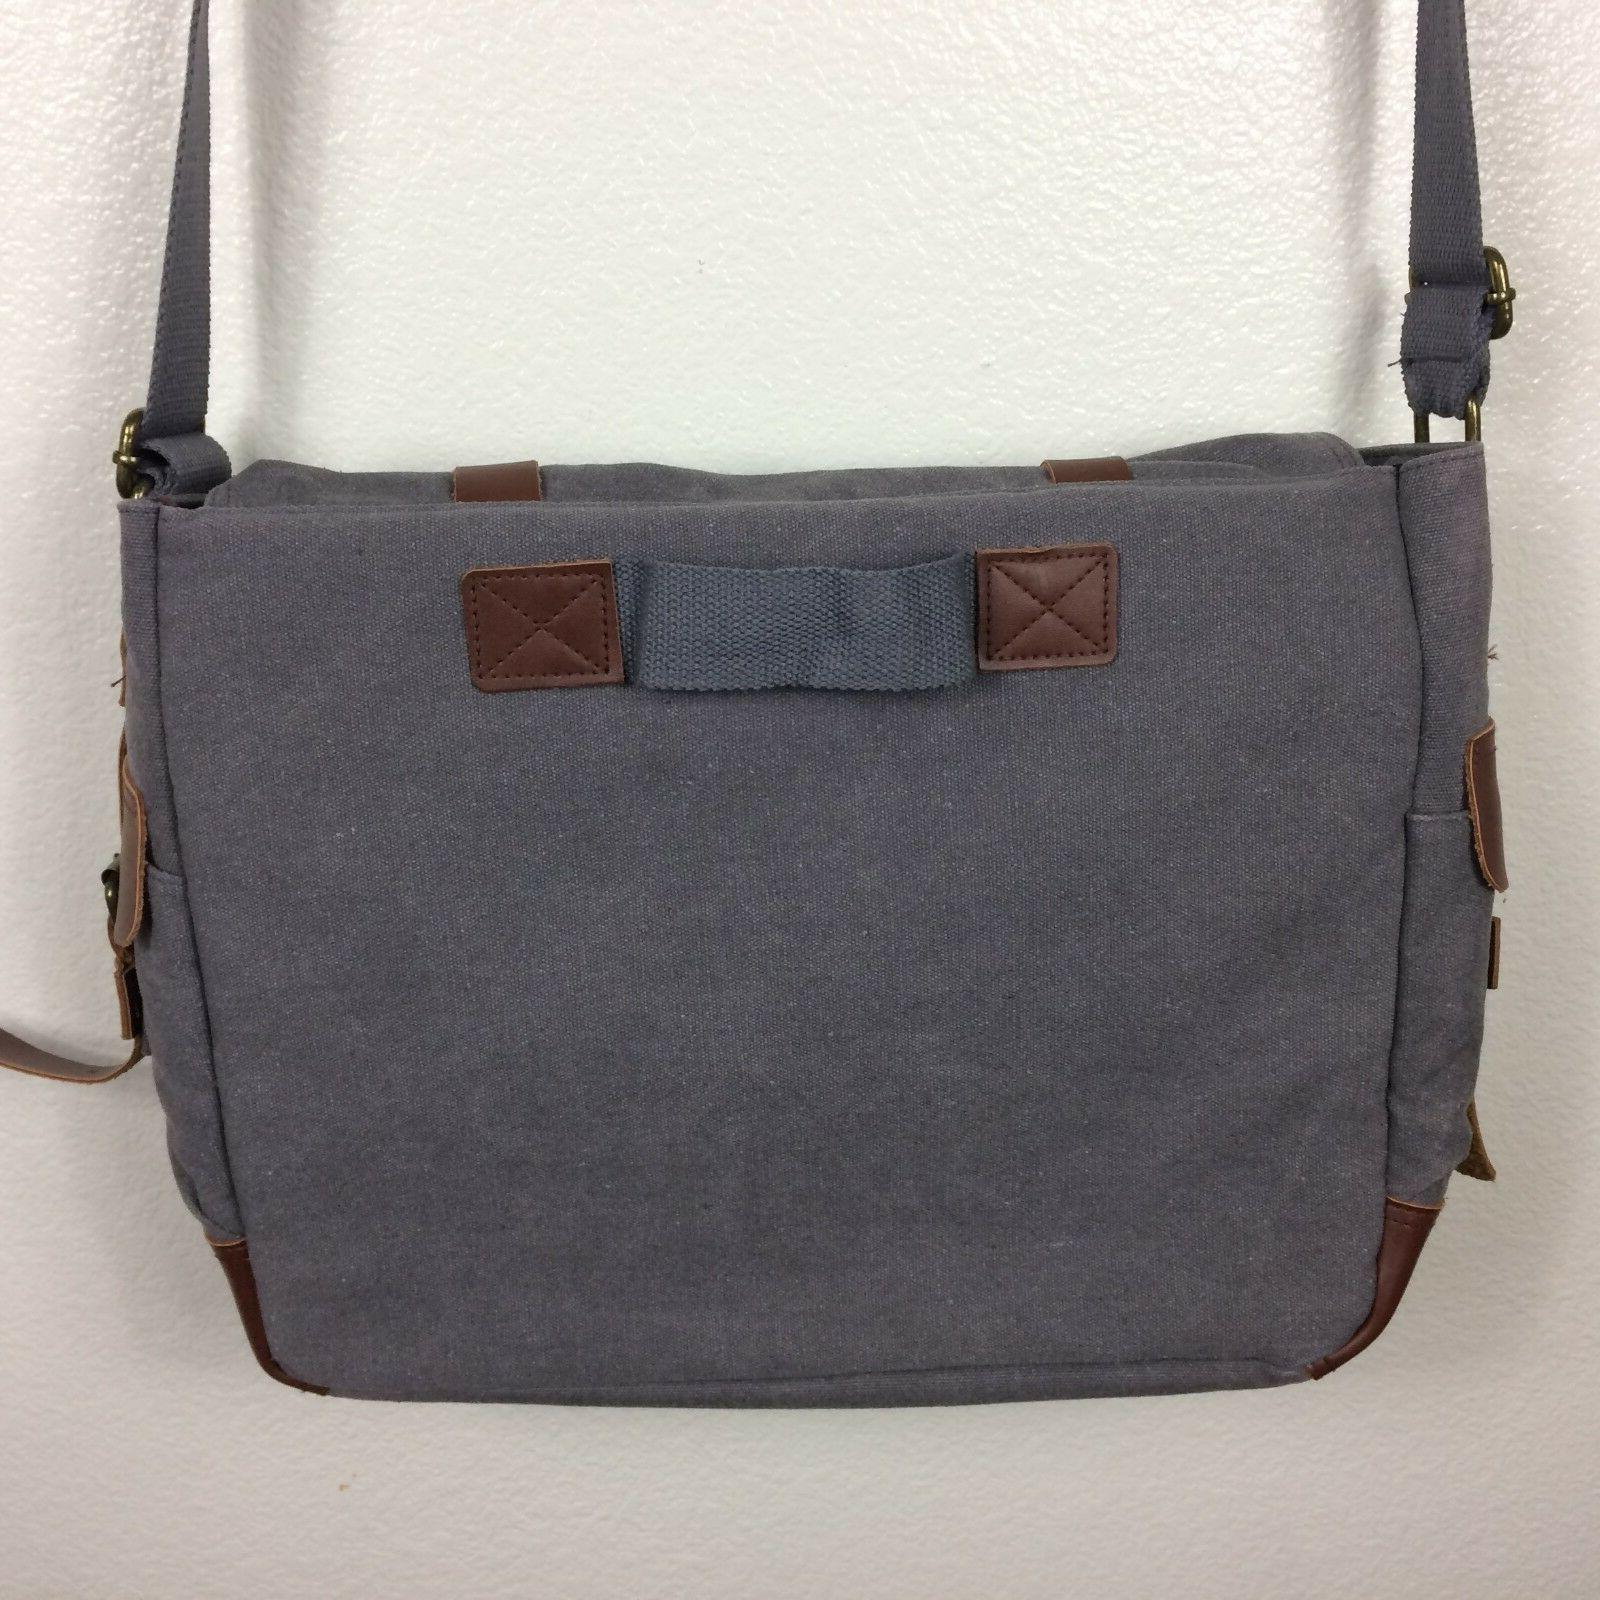 Sweetbriar Classic Bag Gray Brown Leather